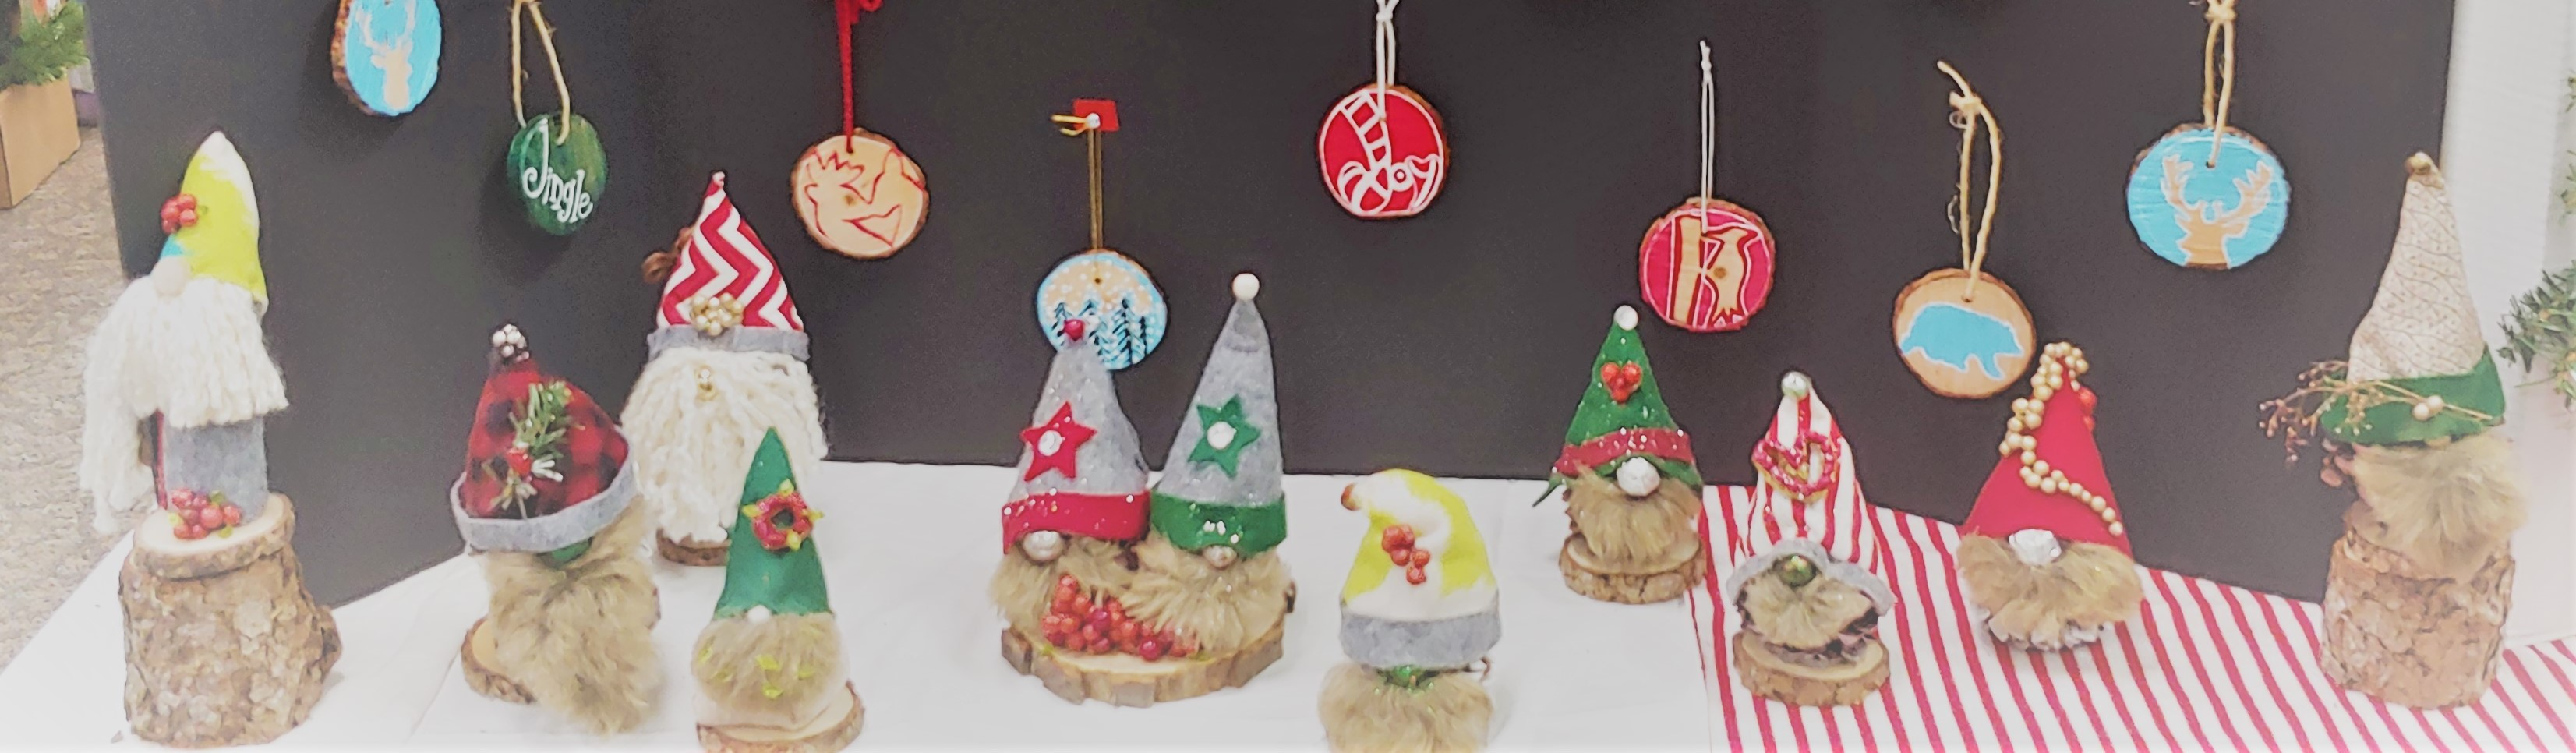 DIY Gnomies on Display